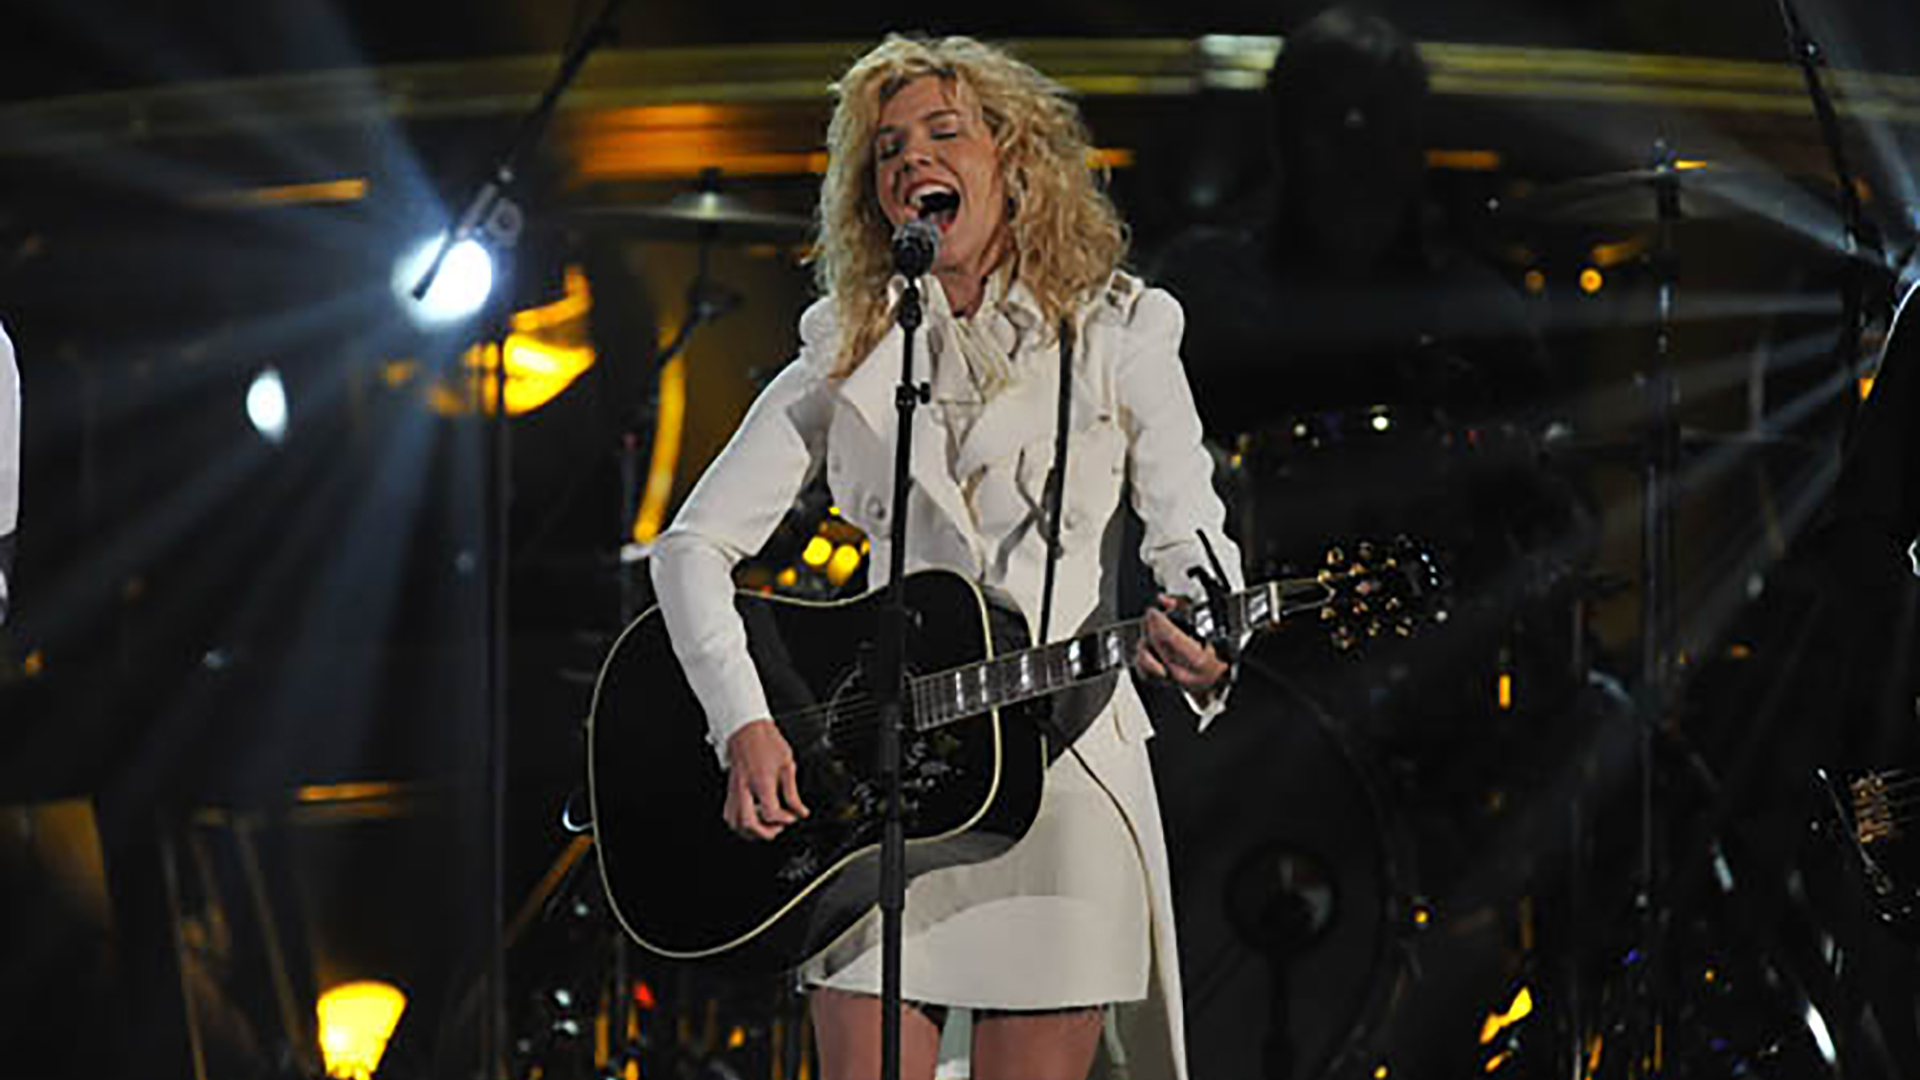 28. The Band Perry perform